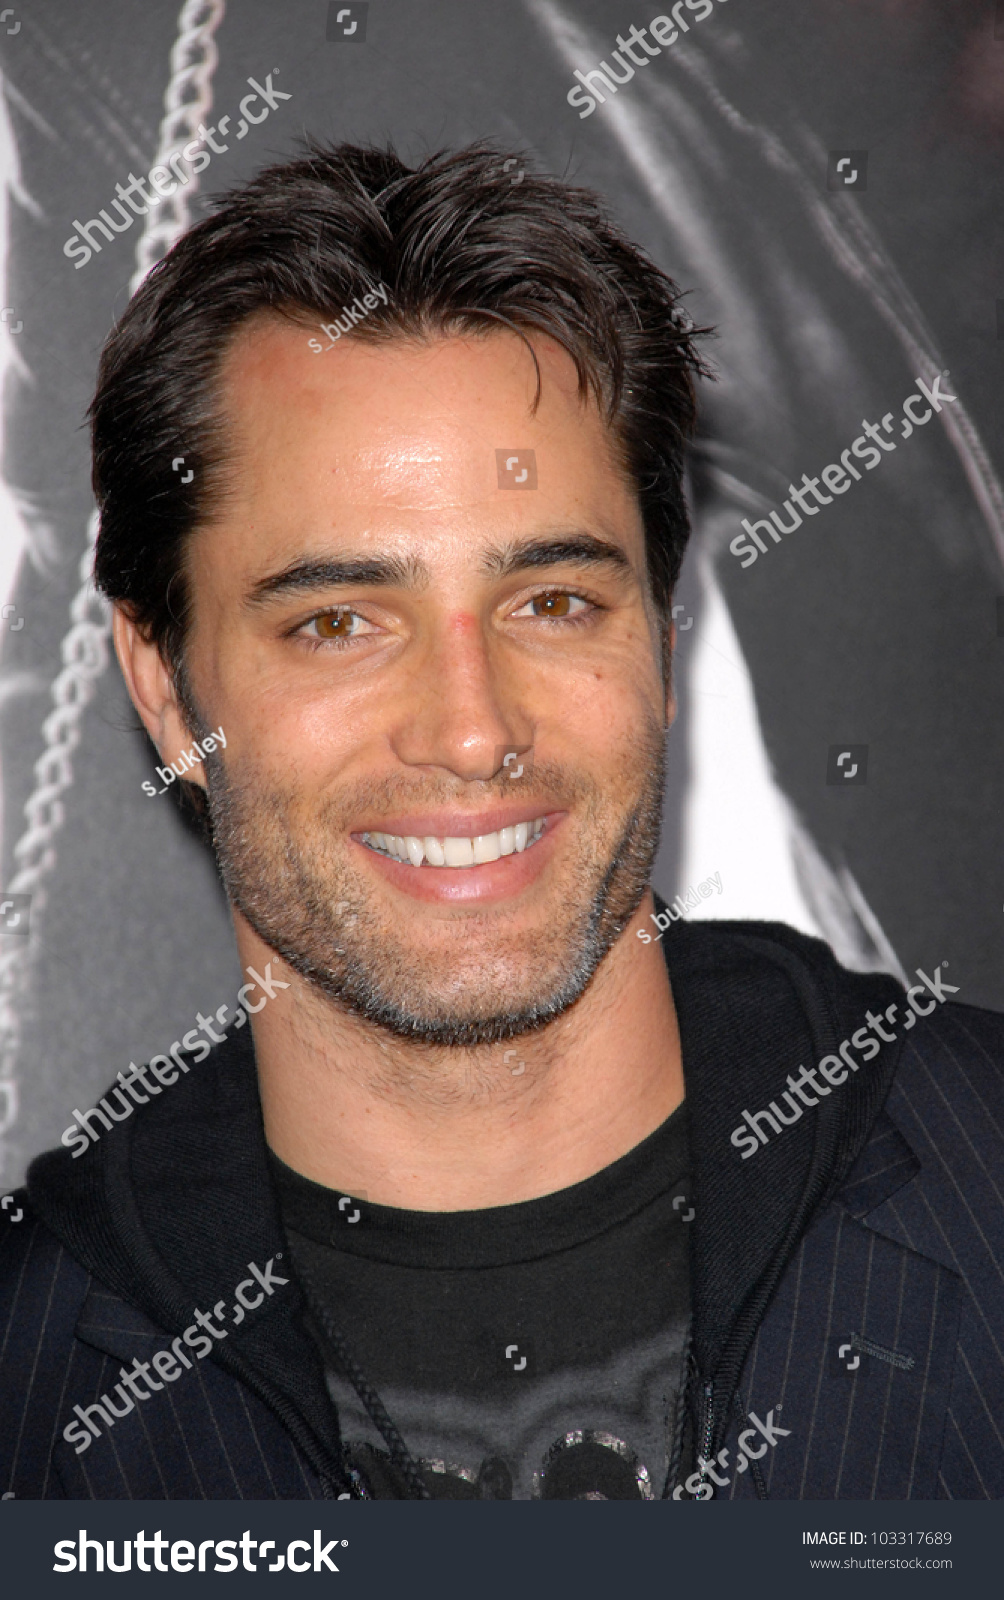 victor webster tumblr